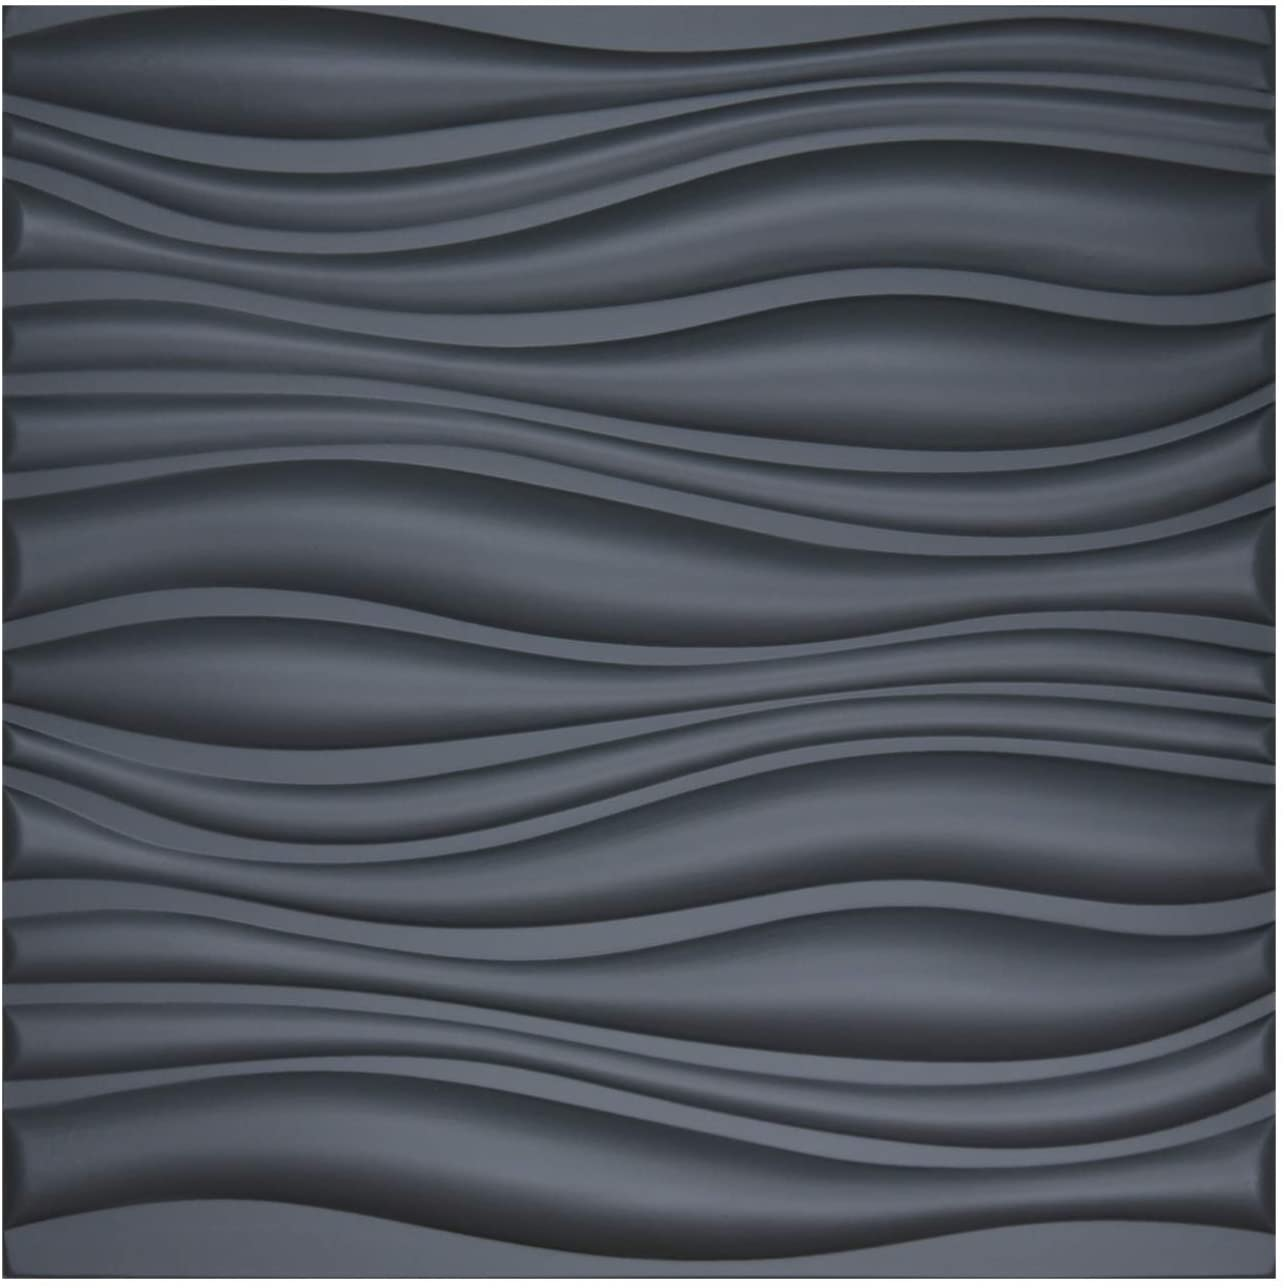 A12064- Leather 3D Textured Wall Covering PU Material Panels Wave Wall 23.6x23.6 In (1 Piece)